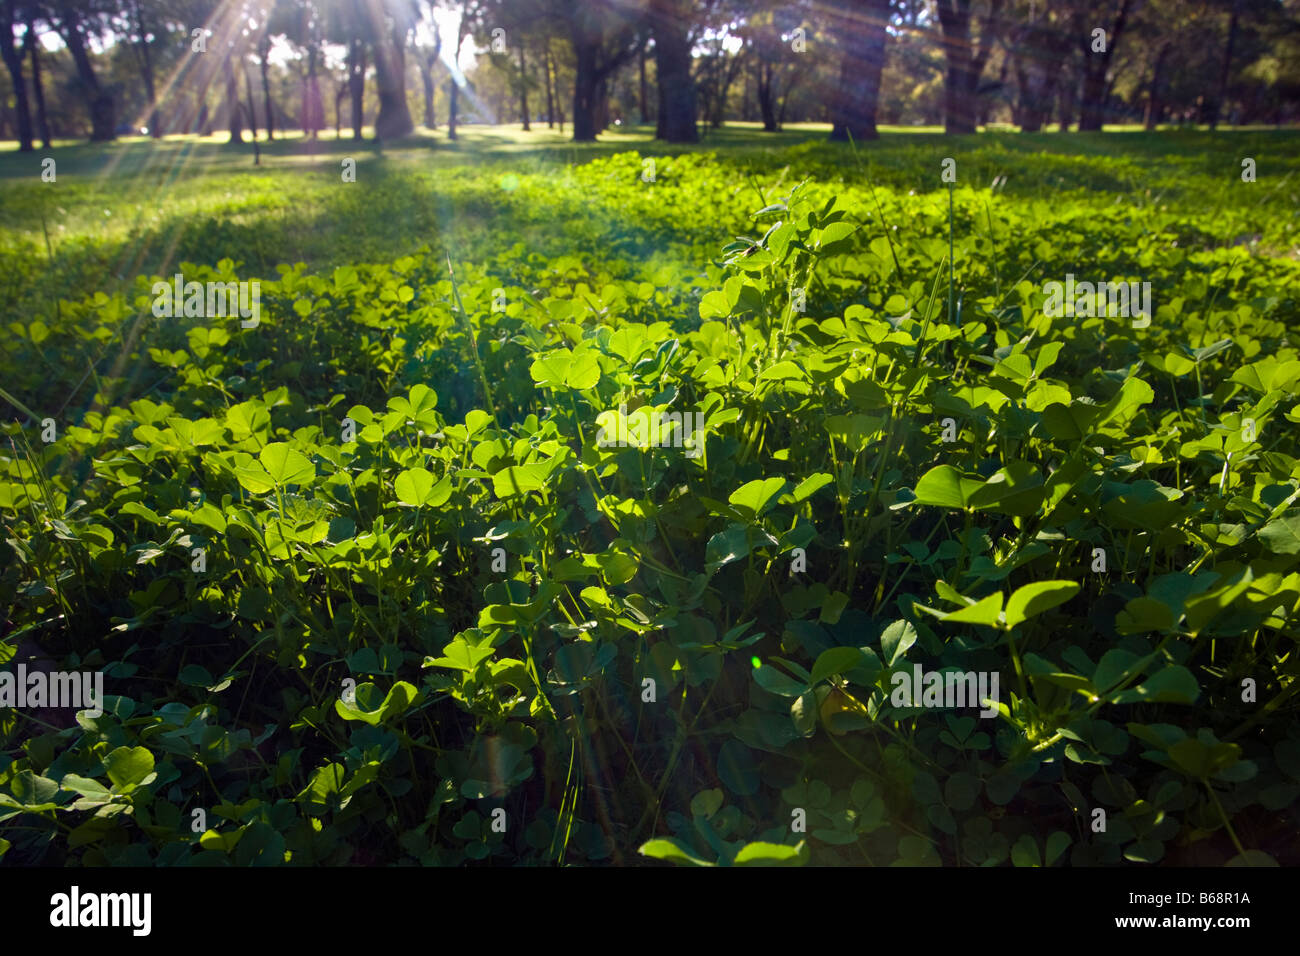 Light shining down on a clovers illustrating life and growing, - Stock Image